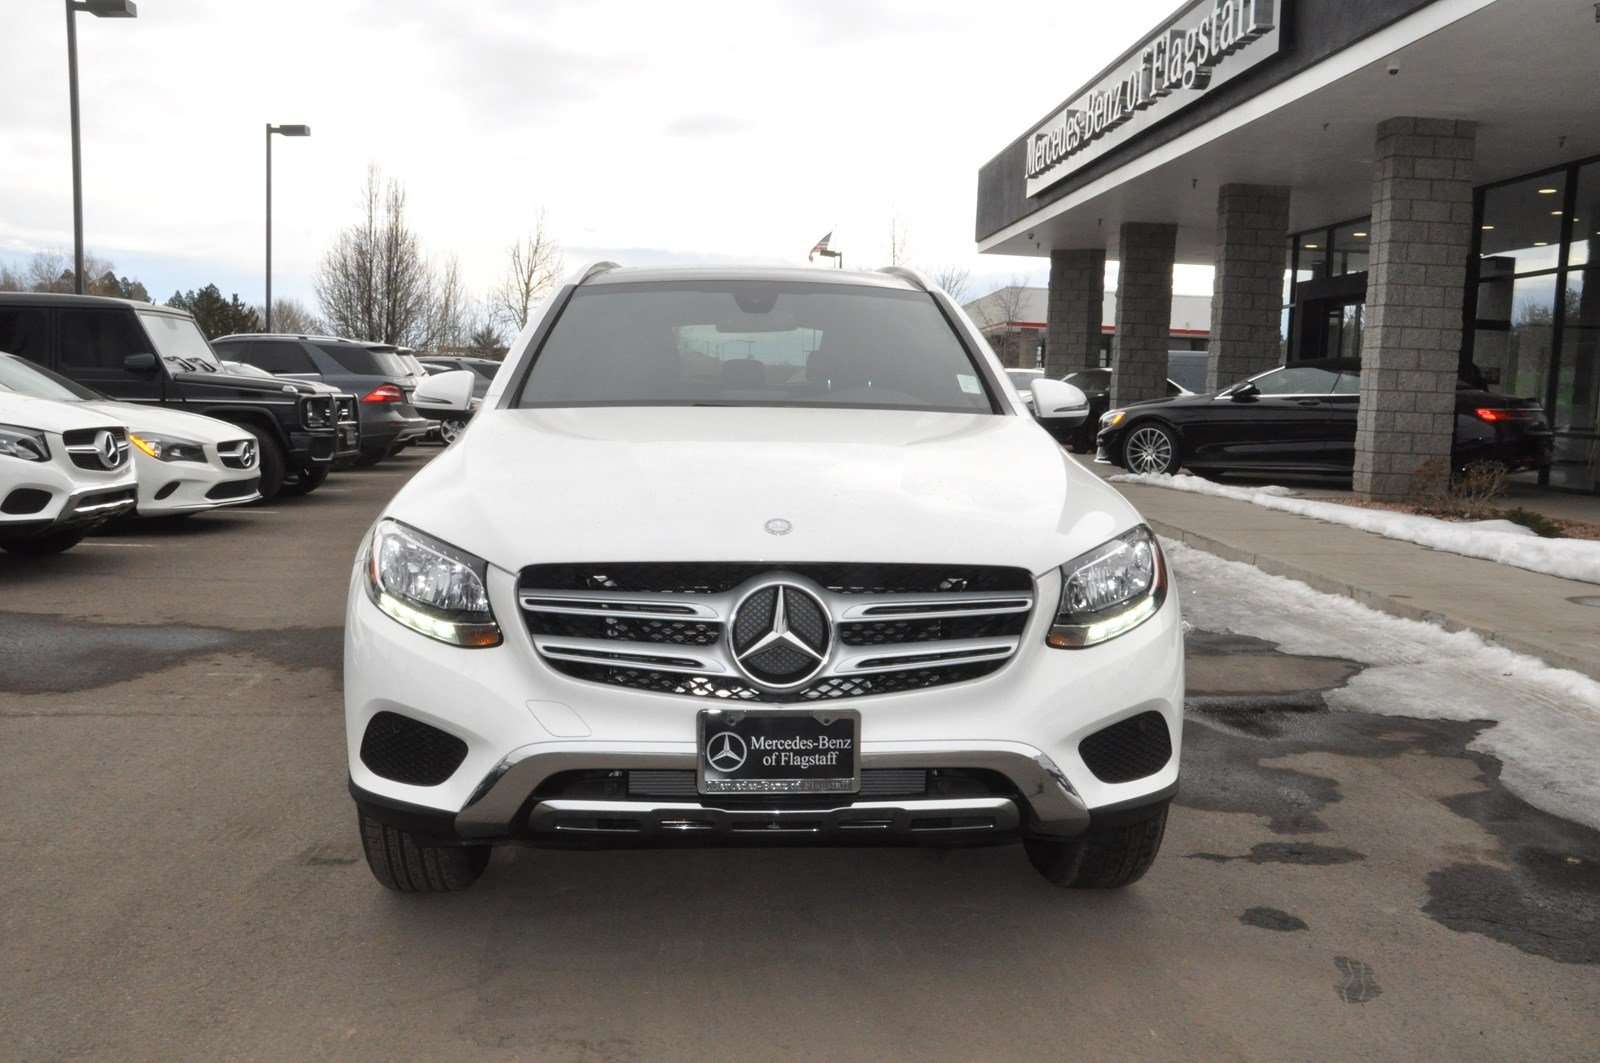 Mercedes glc 300 garage door opener fiat world test drive for Mercedes benz of flagstaff